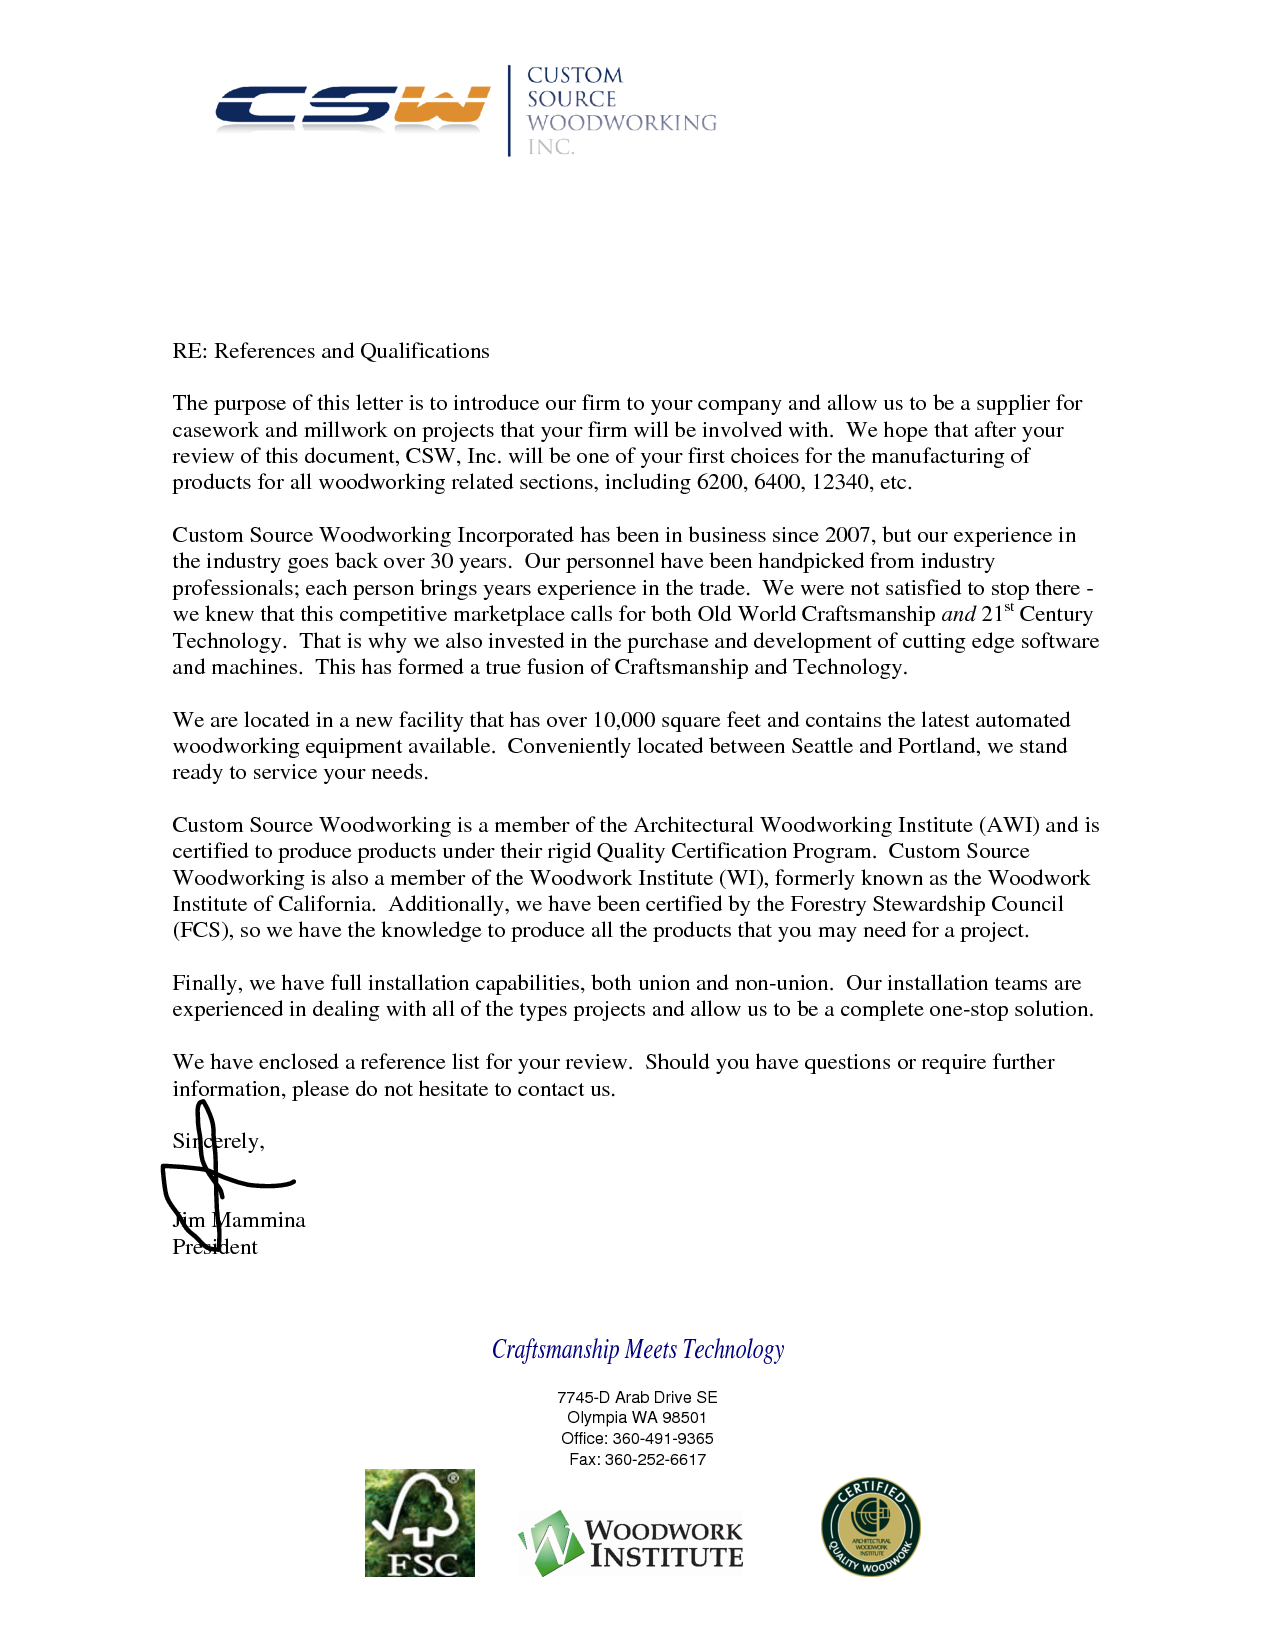 Letter of Recommendation From Beck General Contractor — EVstudio